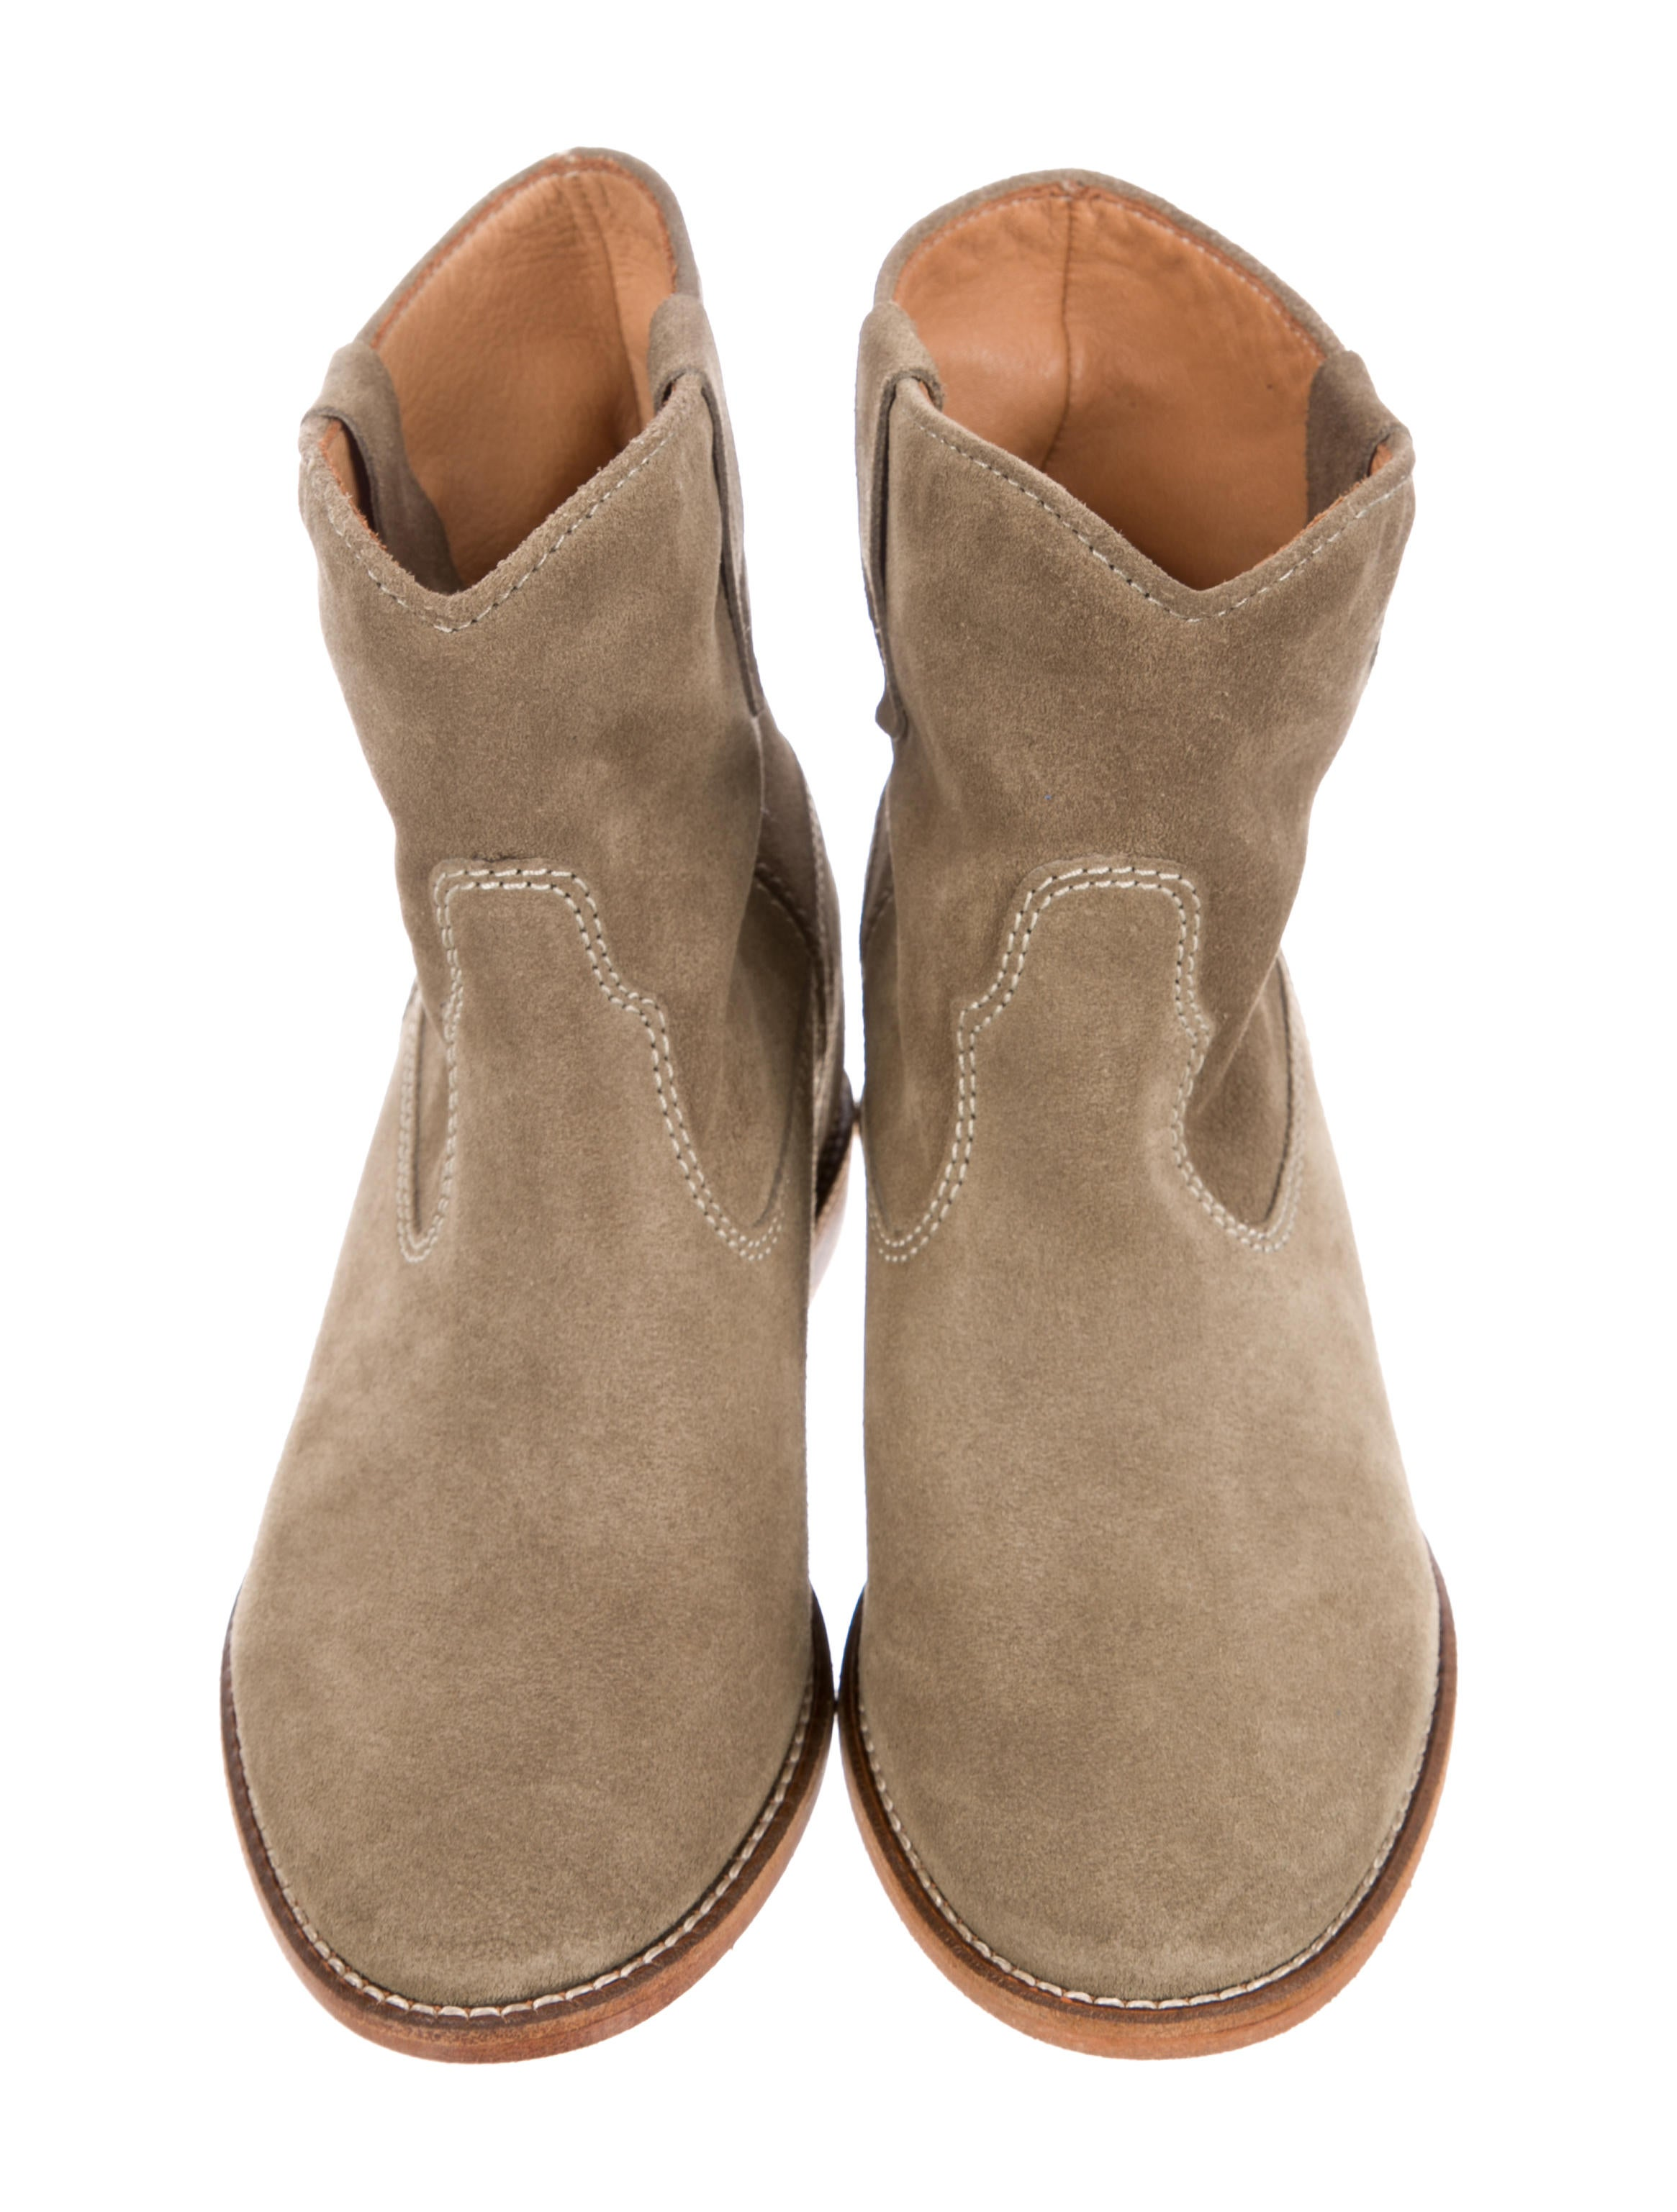 Étoile Isabel Marant Suede Crisi Ankle Boots w/ Tags wholesale online authentic sale online 96Uckd